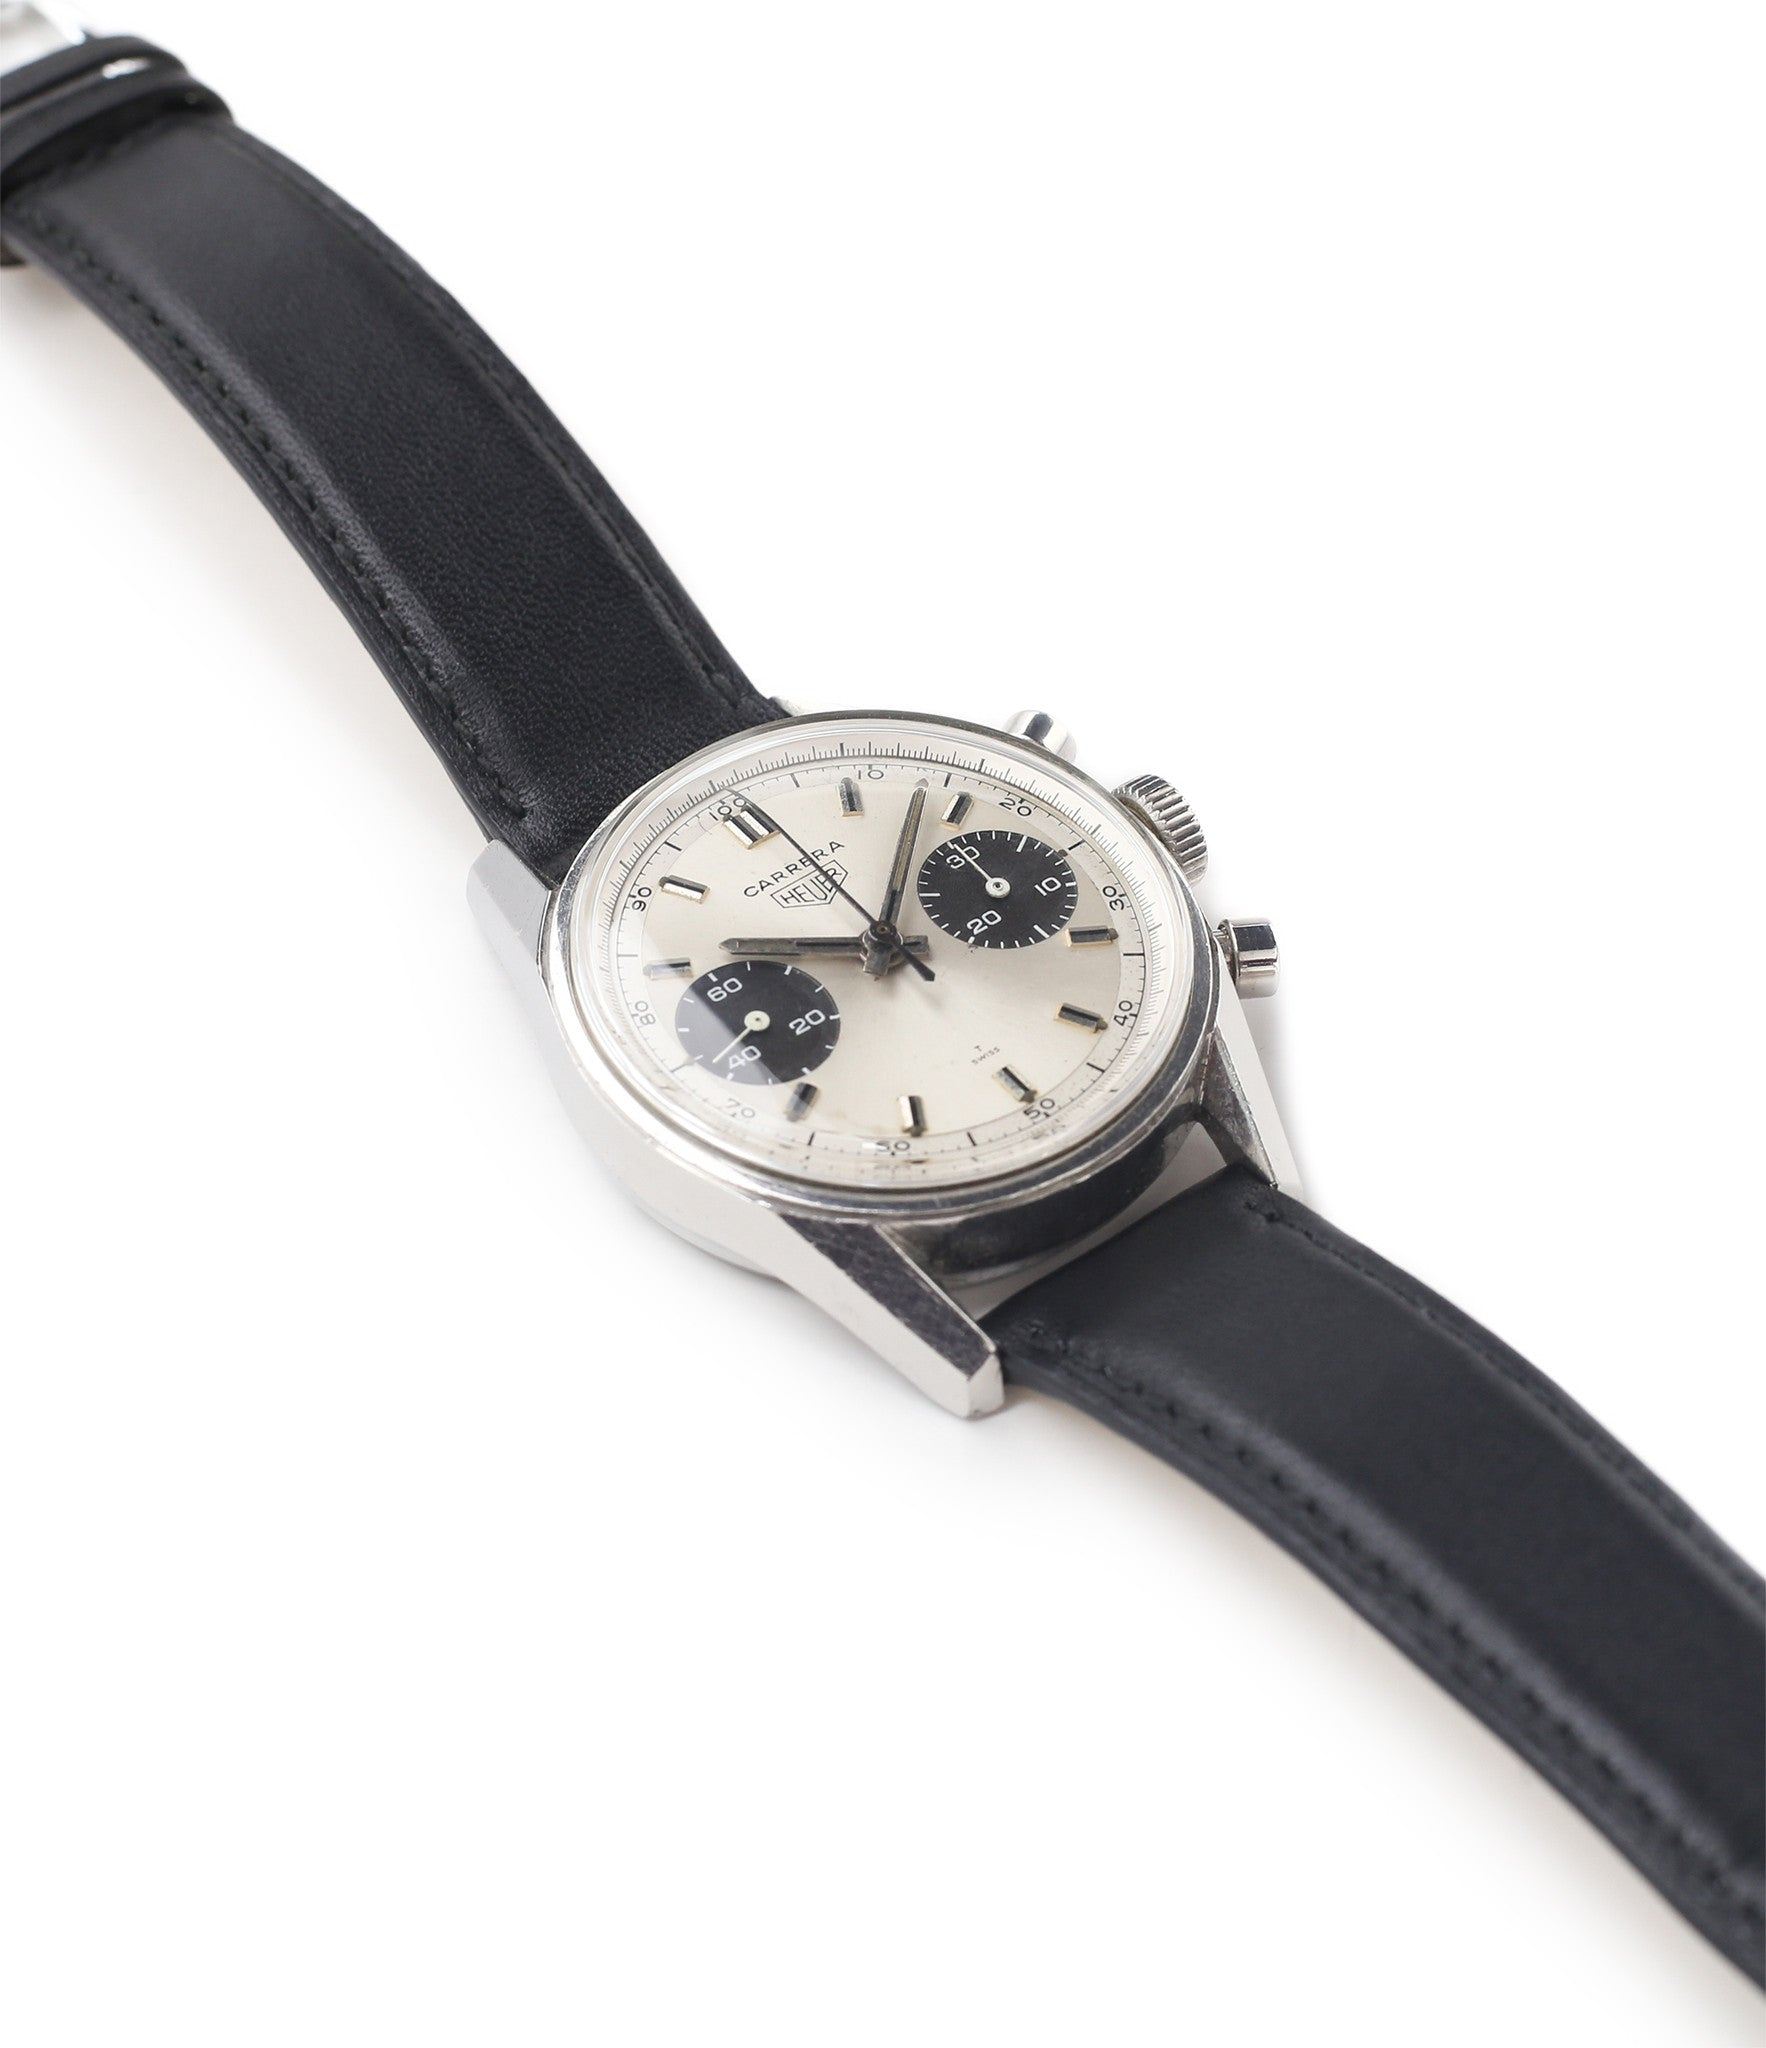 selling Heuer Carrera 7753SND vintage sports watch panda dial online at A Collected Man